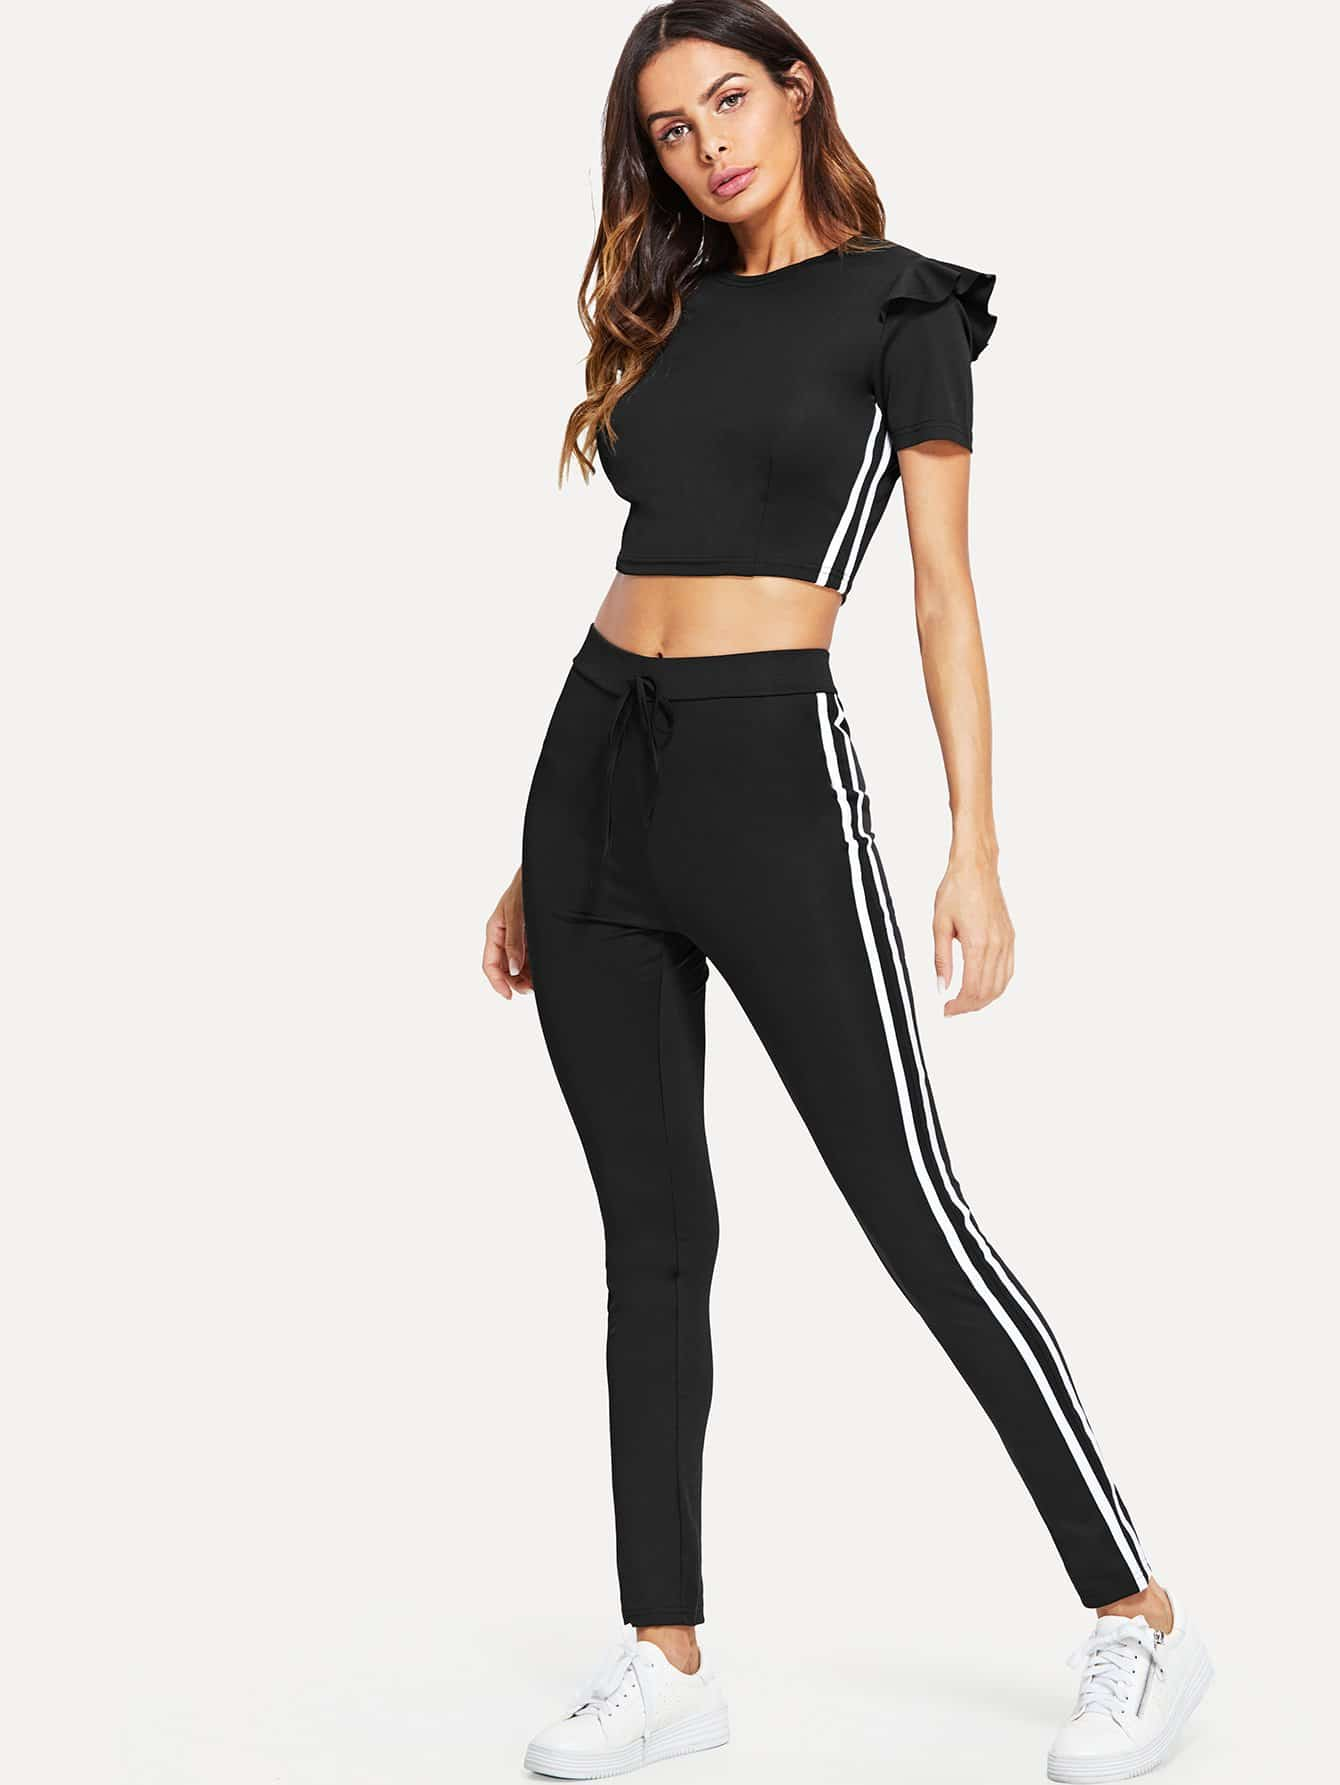 Striped Tape Side Ruffle Trim Top With Pants striped tape side legging shorts